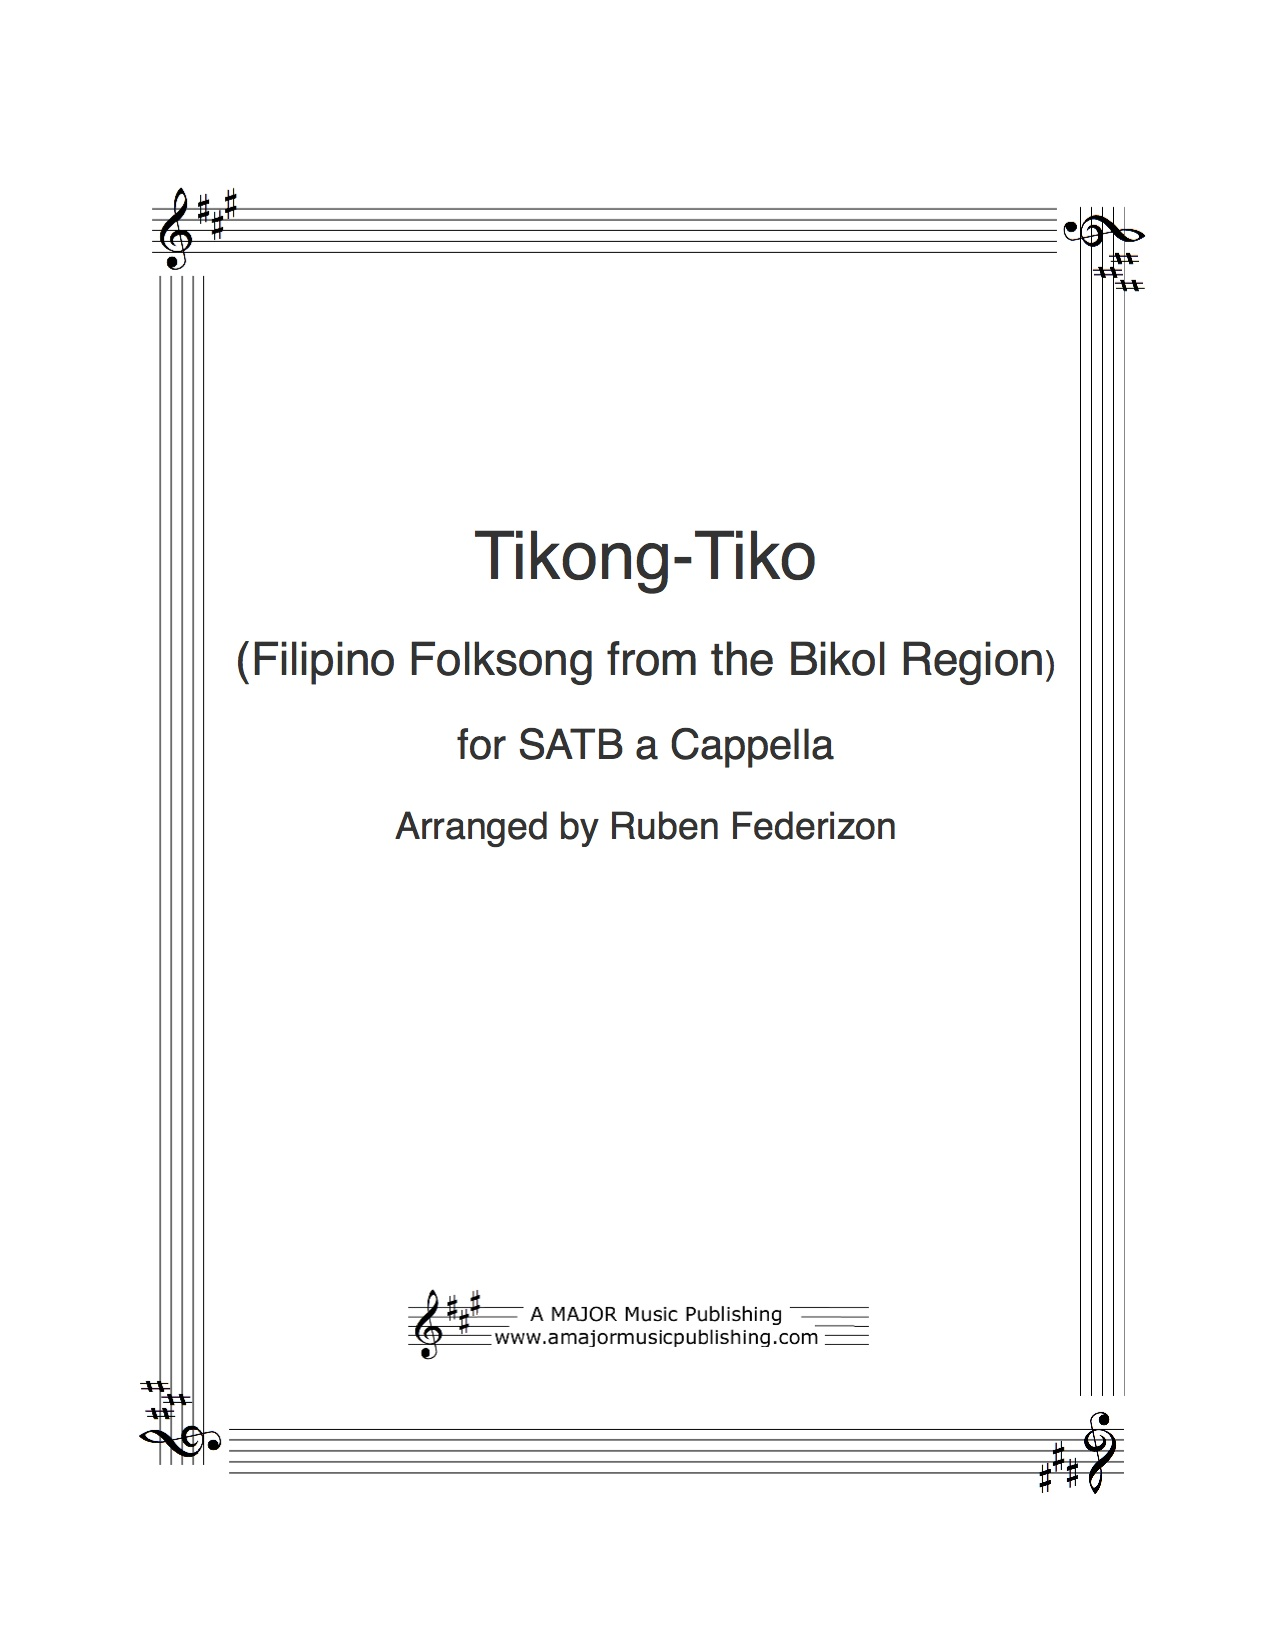 Tikong-tiko (Filipino folksong from the Bikol region) - - - - - - - - - 1  download with authorization to print 16 copies